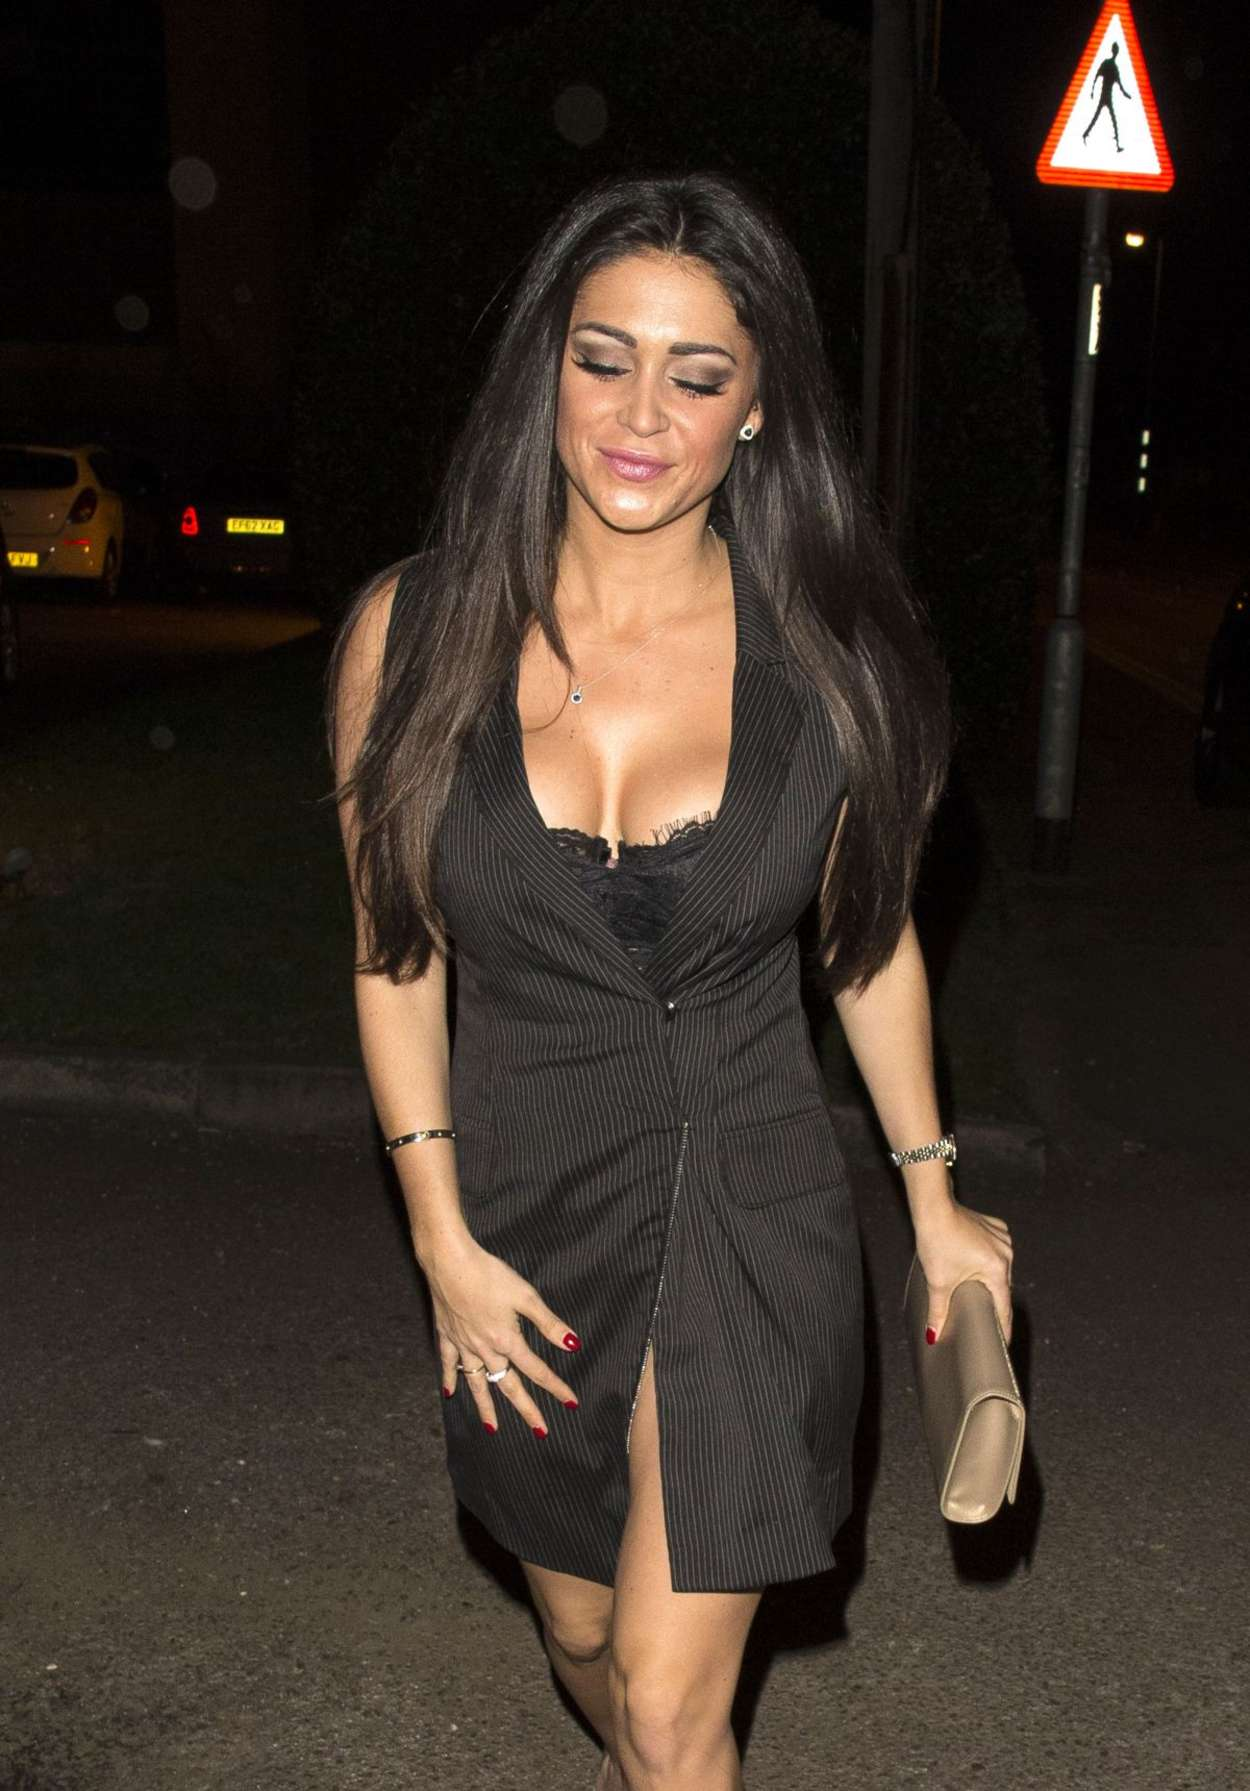 Casey Batchelor At Bonded By Blood 2 Wrap Party In Essex